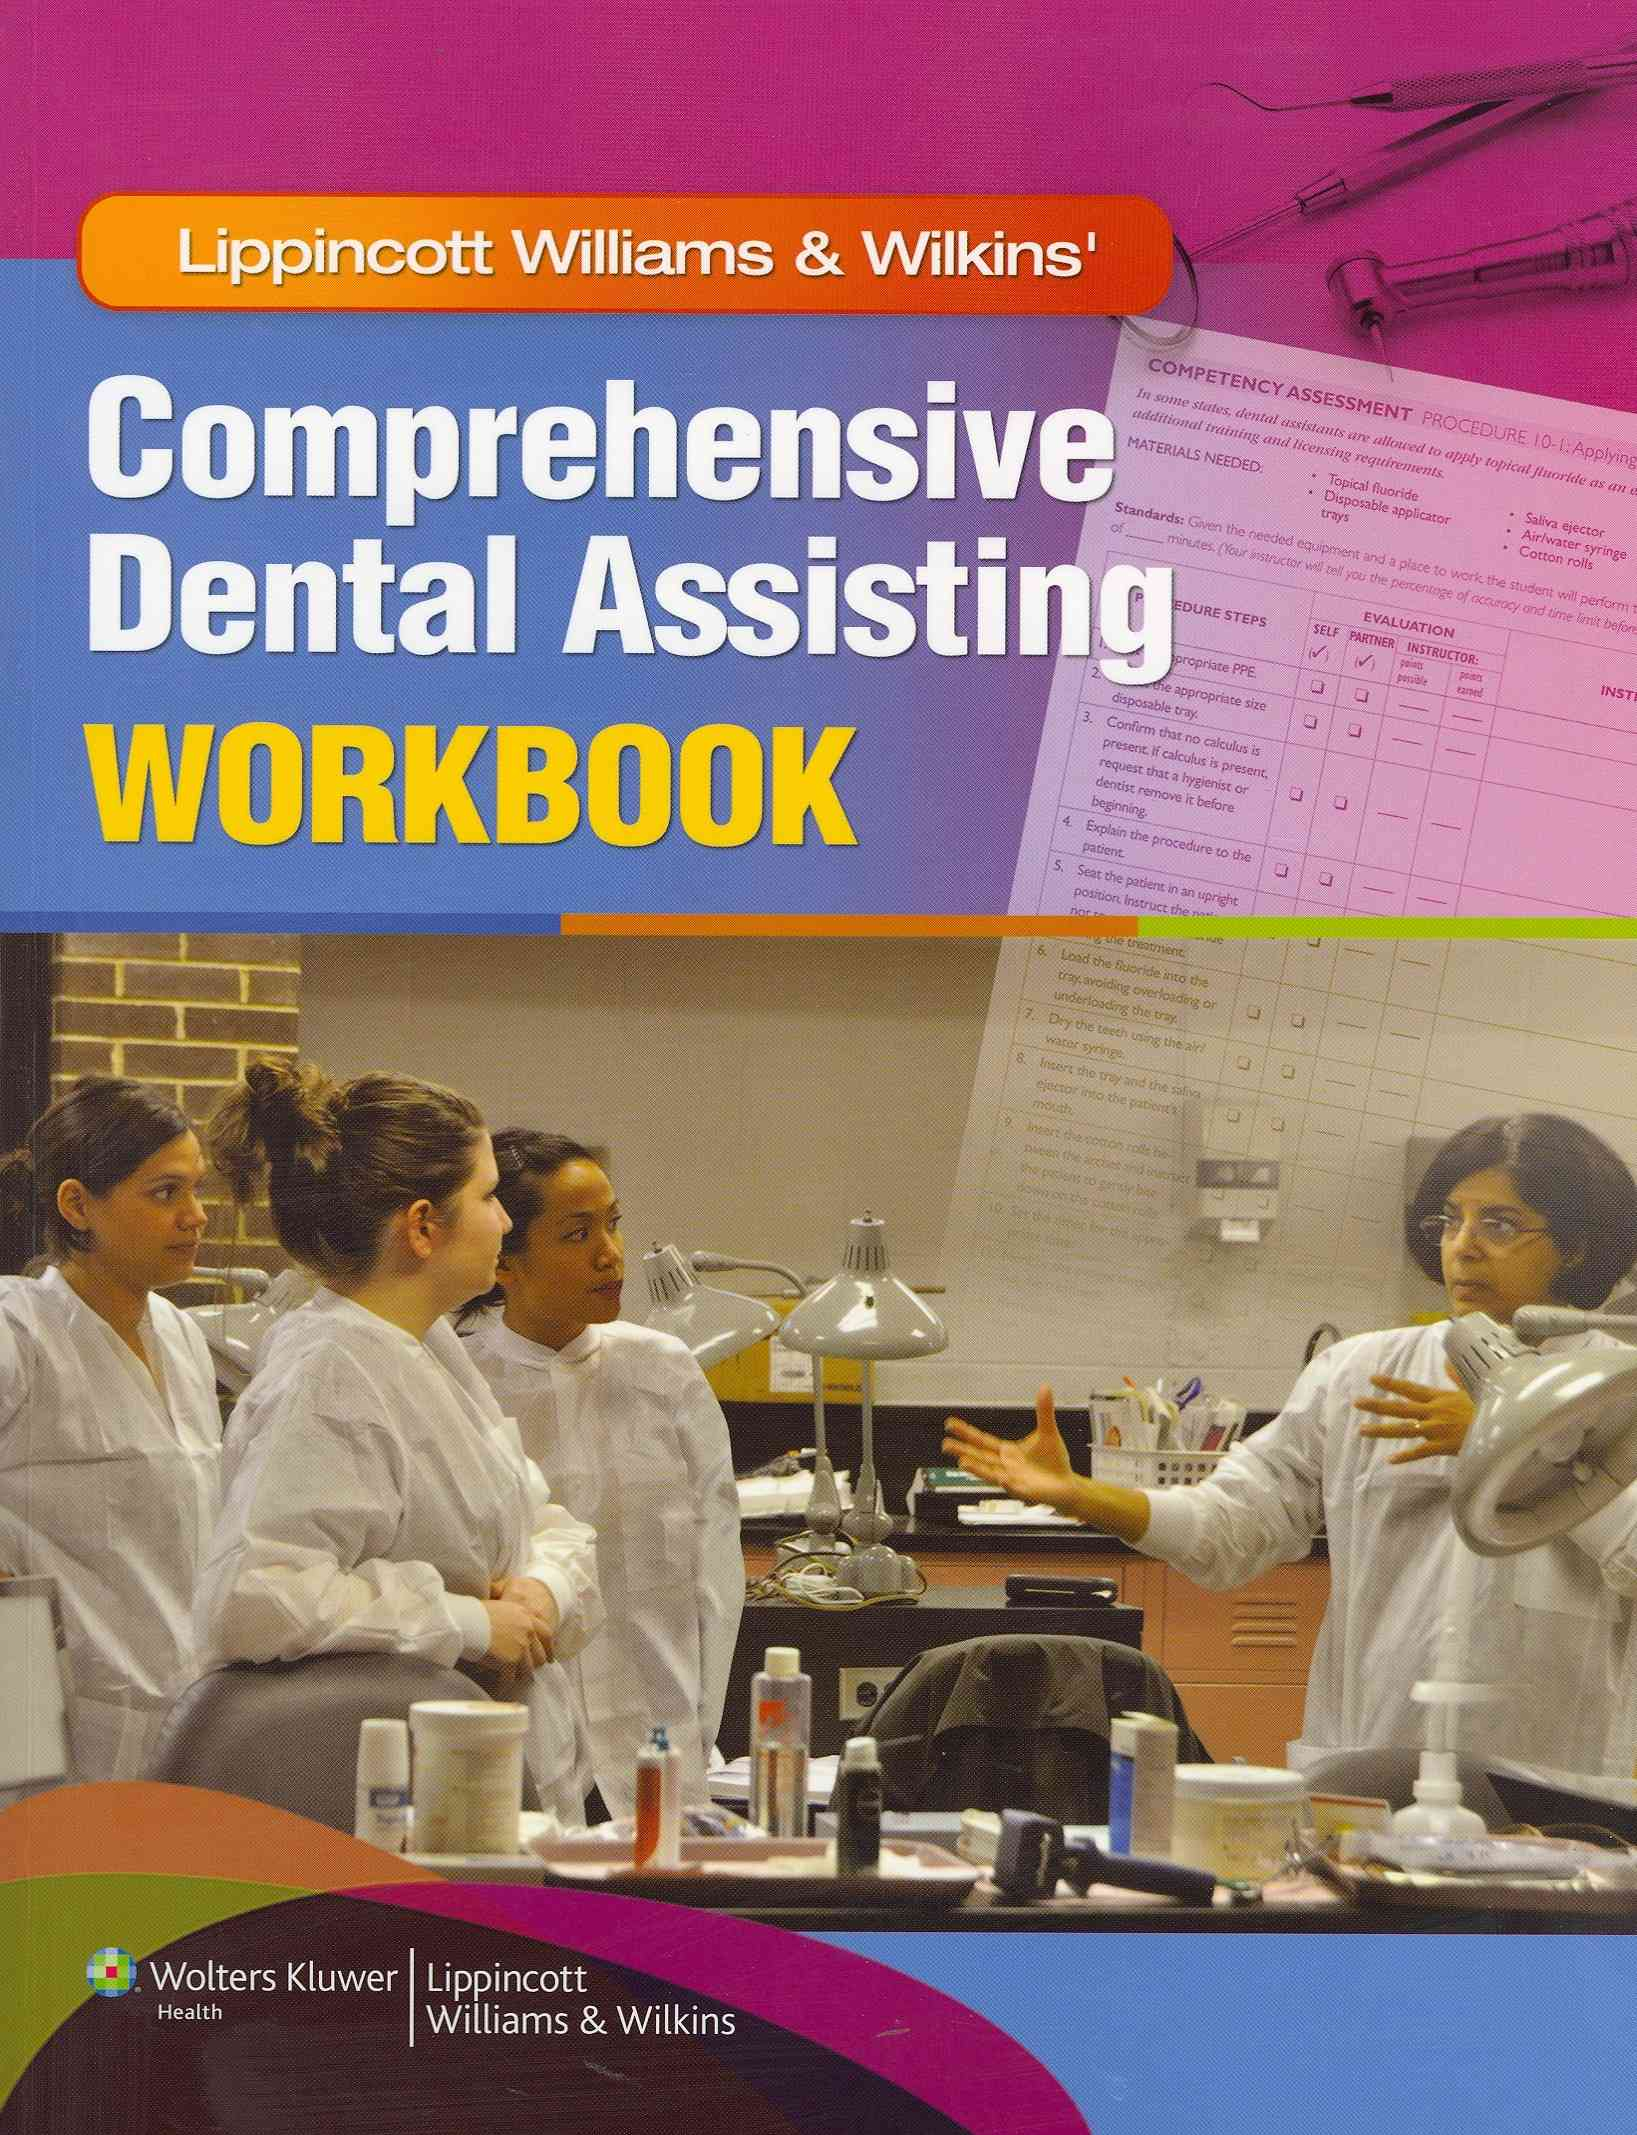 Lippincott Williams & Wilkins' Comprehensive Dental Assisting Workbook By Lippincott Williams & Wilkins (COR)